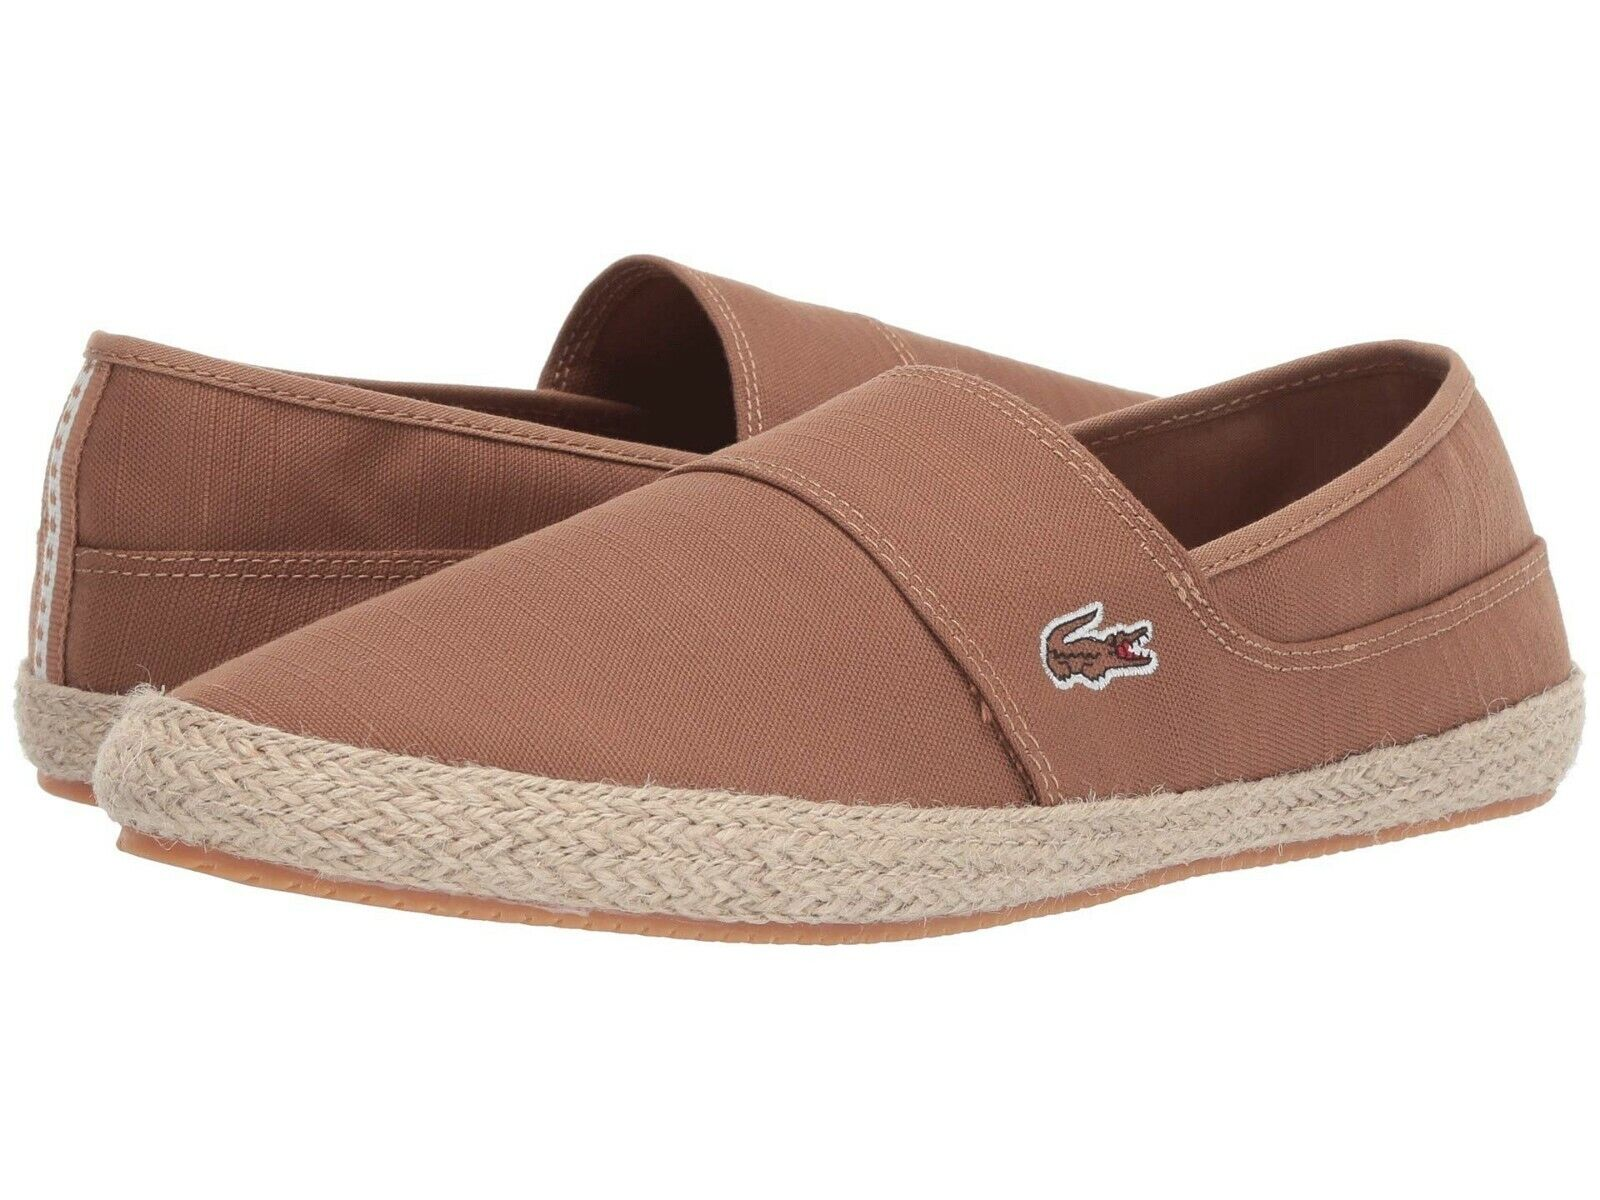 Lacoste Marice 119 Men's Croc Logo Casual Slip On Loafer shoes Sneakers L Brown